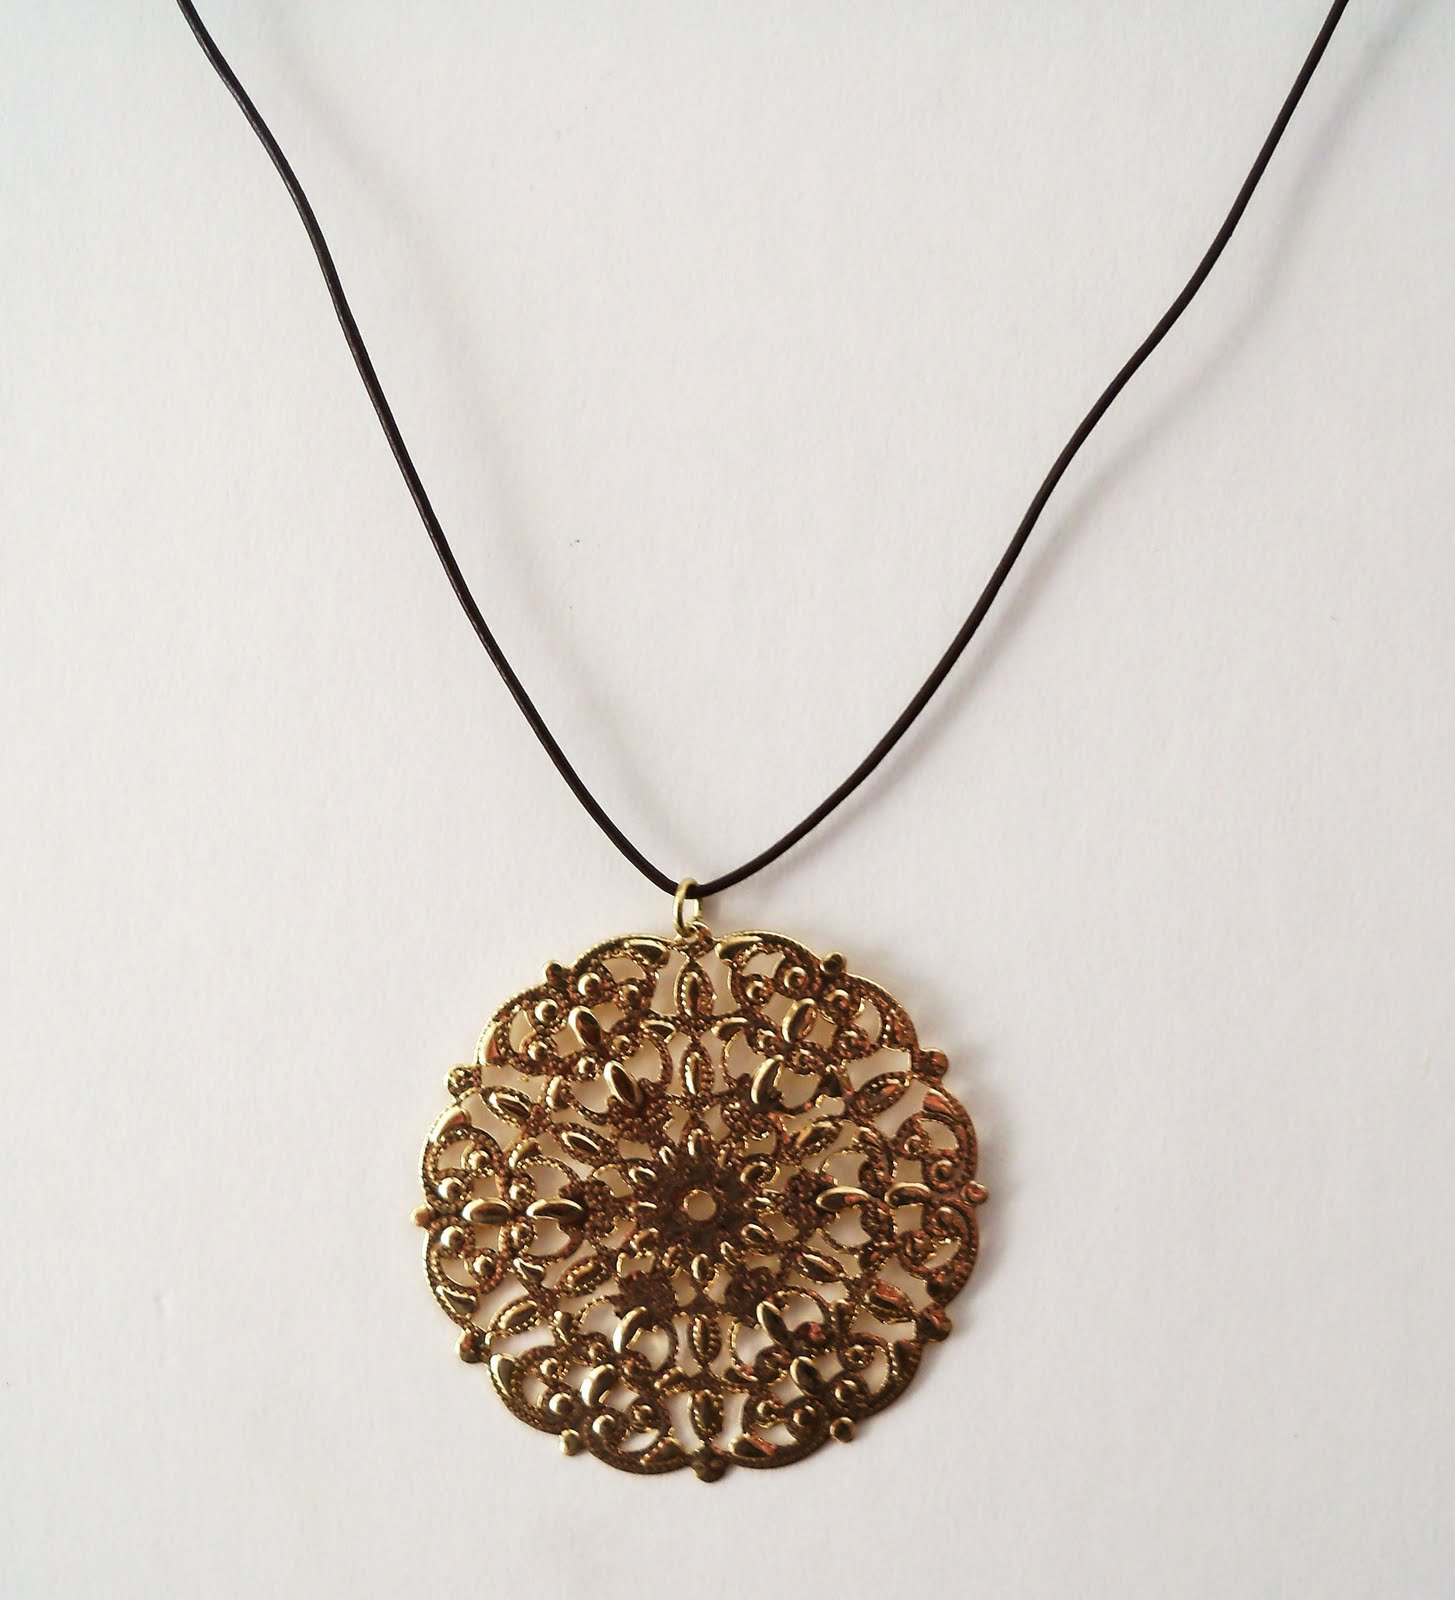 designs go consulting to evolve boring necklace from all around fabulous silpada image jewelry with